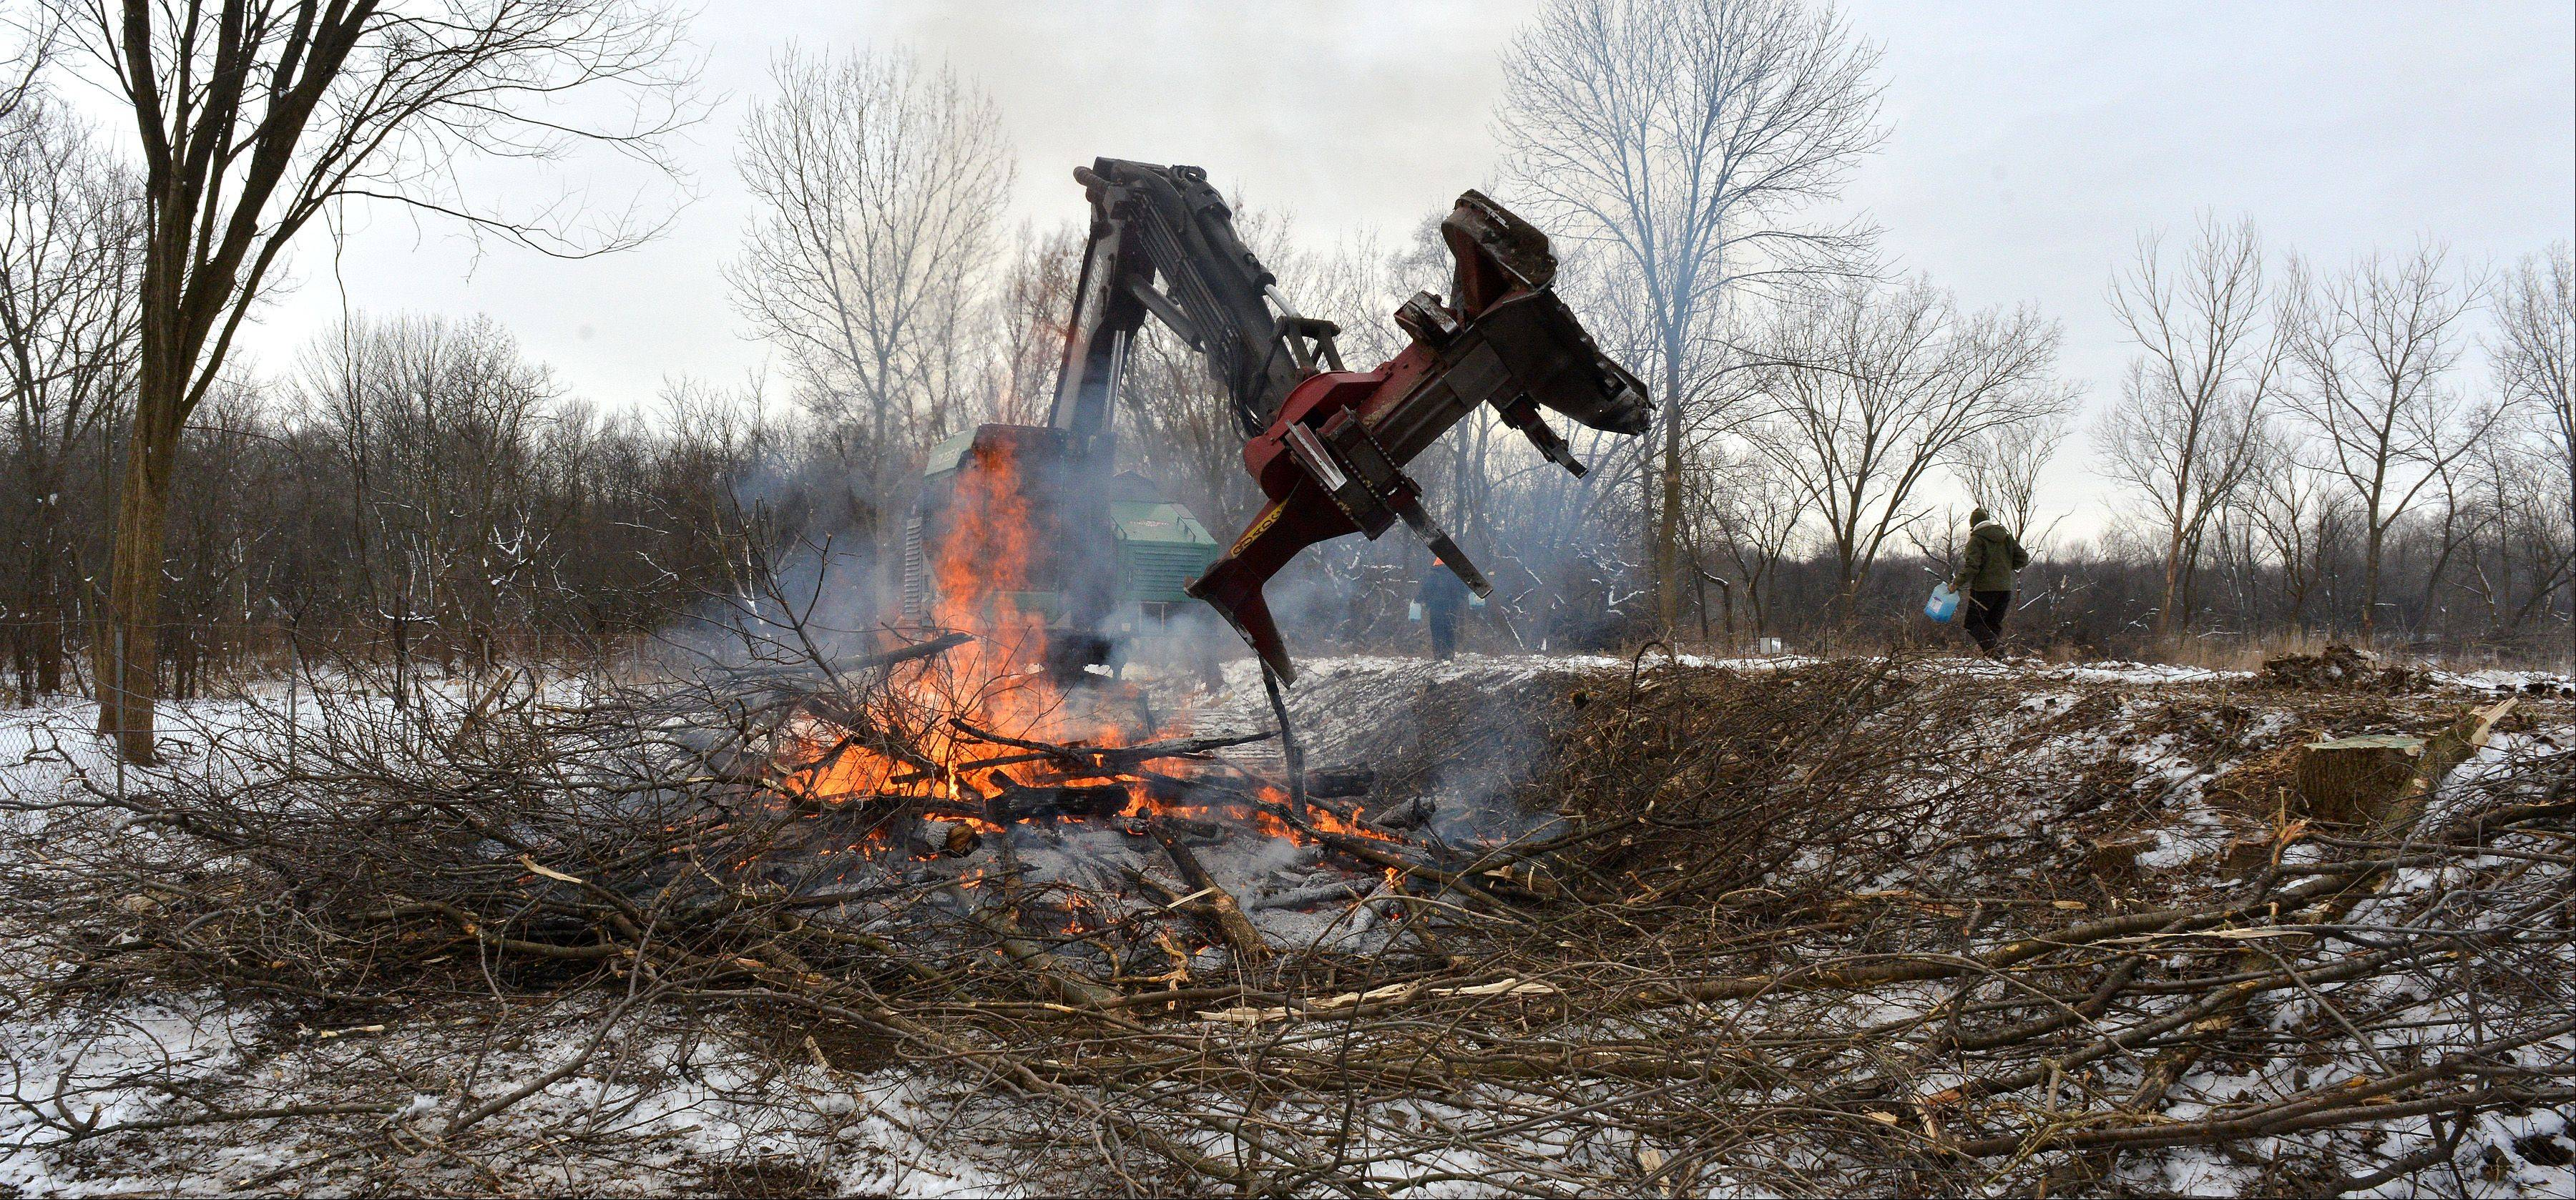 After being cut down, trees and underbrush are being burned.